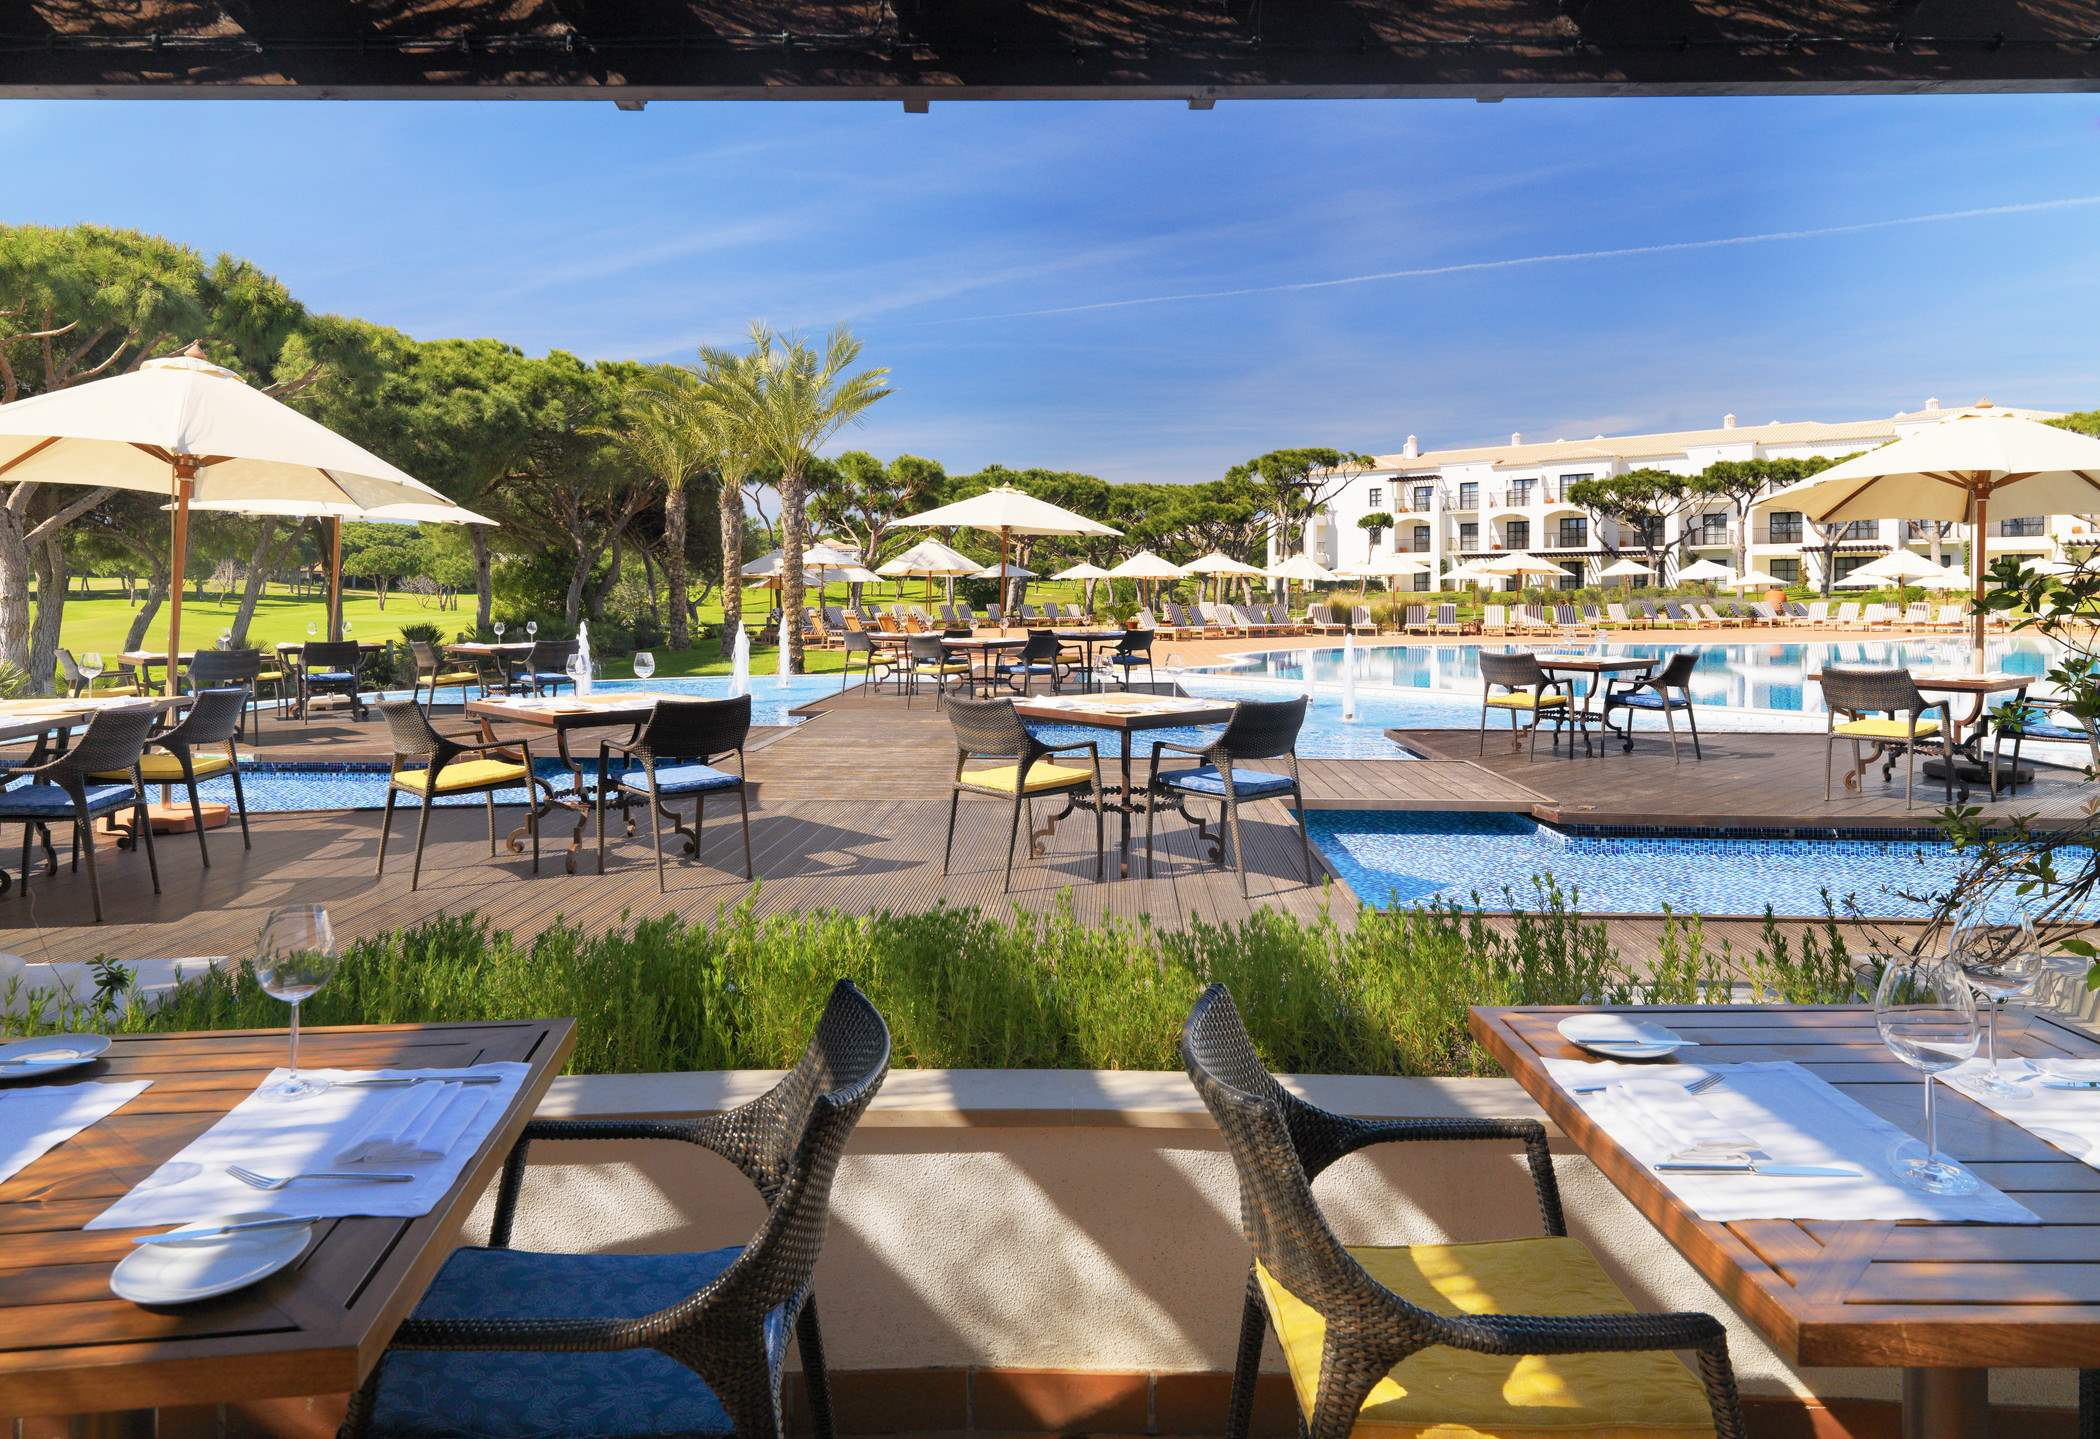 Pine Cliffs Gardens, One Bedroom Suite, S/C Basis, 1 bedroom apartment in Pine Cliffs Resort, Algarve Photo #37